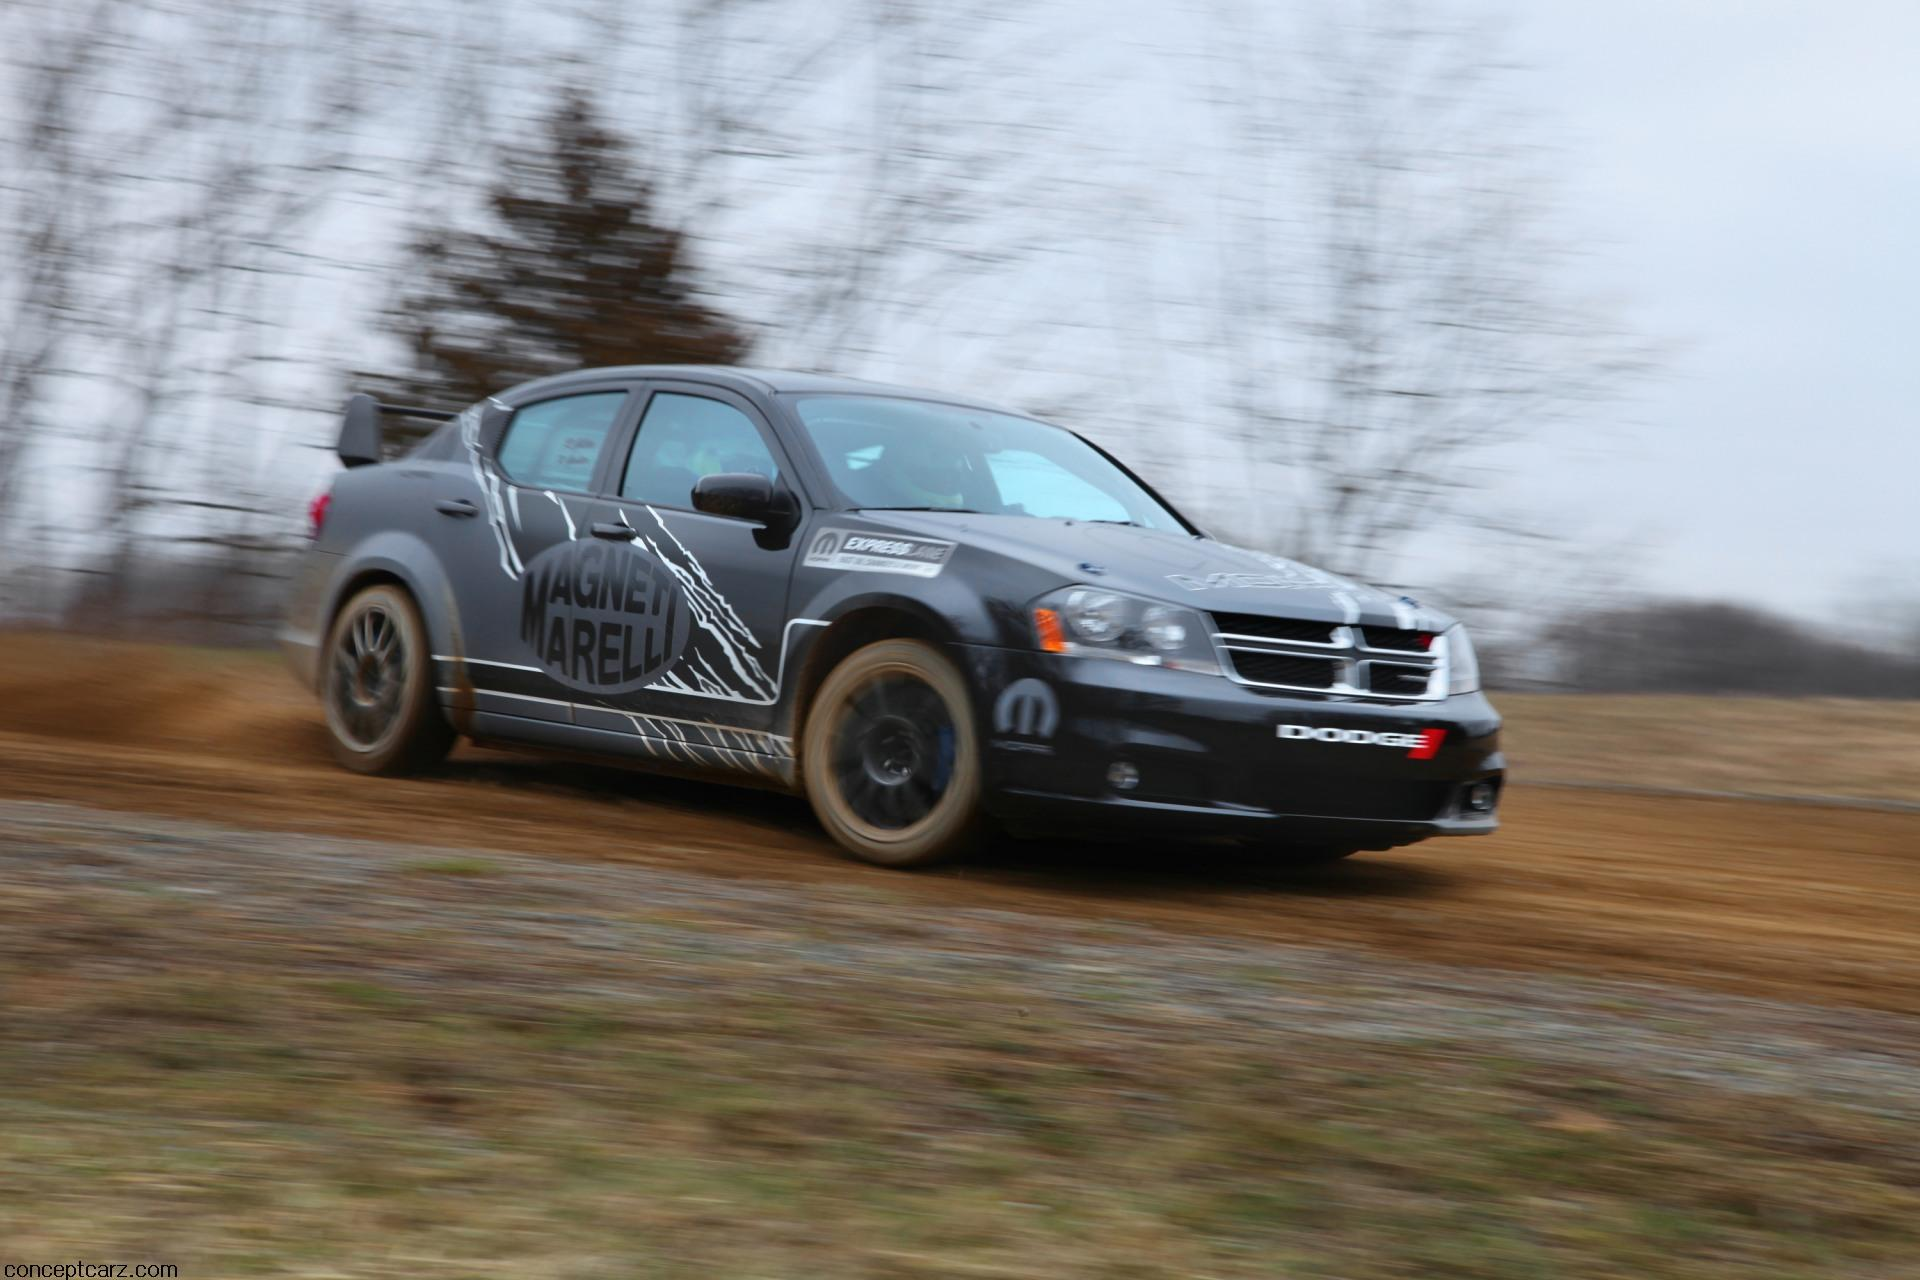 Dodge Avenger: Autostick — if equipped